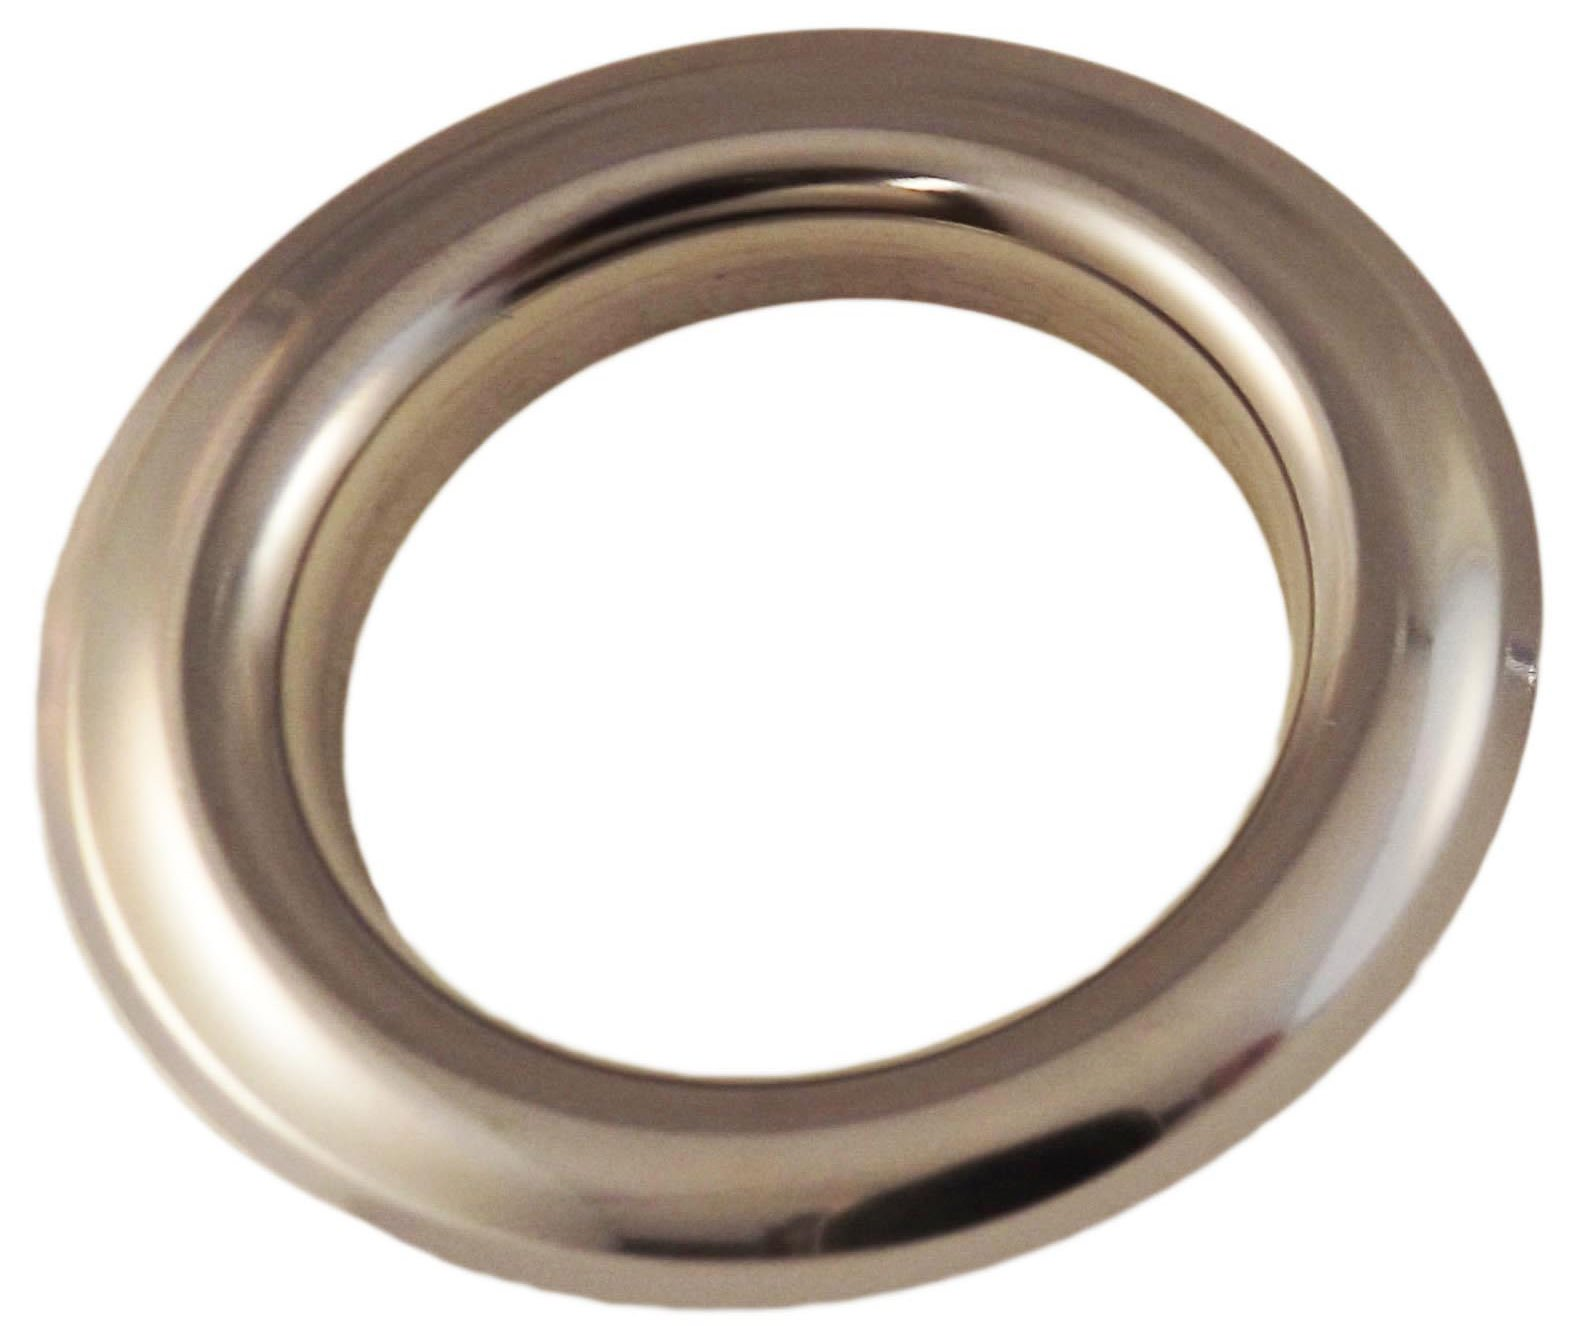 Large Chrome Metal Curtain Drapery Hardware Supplies #12-1 9/16 inch Inner Diameter Decorative Grommet/Rings w/Washer Eyelet Lot of 10/25 / 50/100 pcs (Pack of 100) by Lushes Curtains